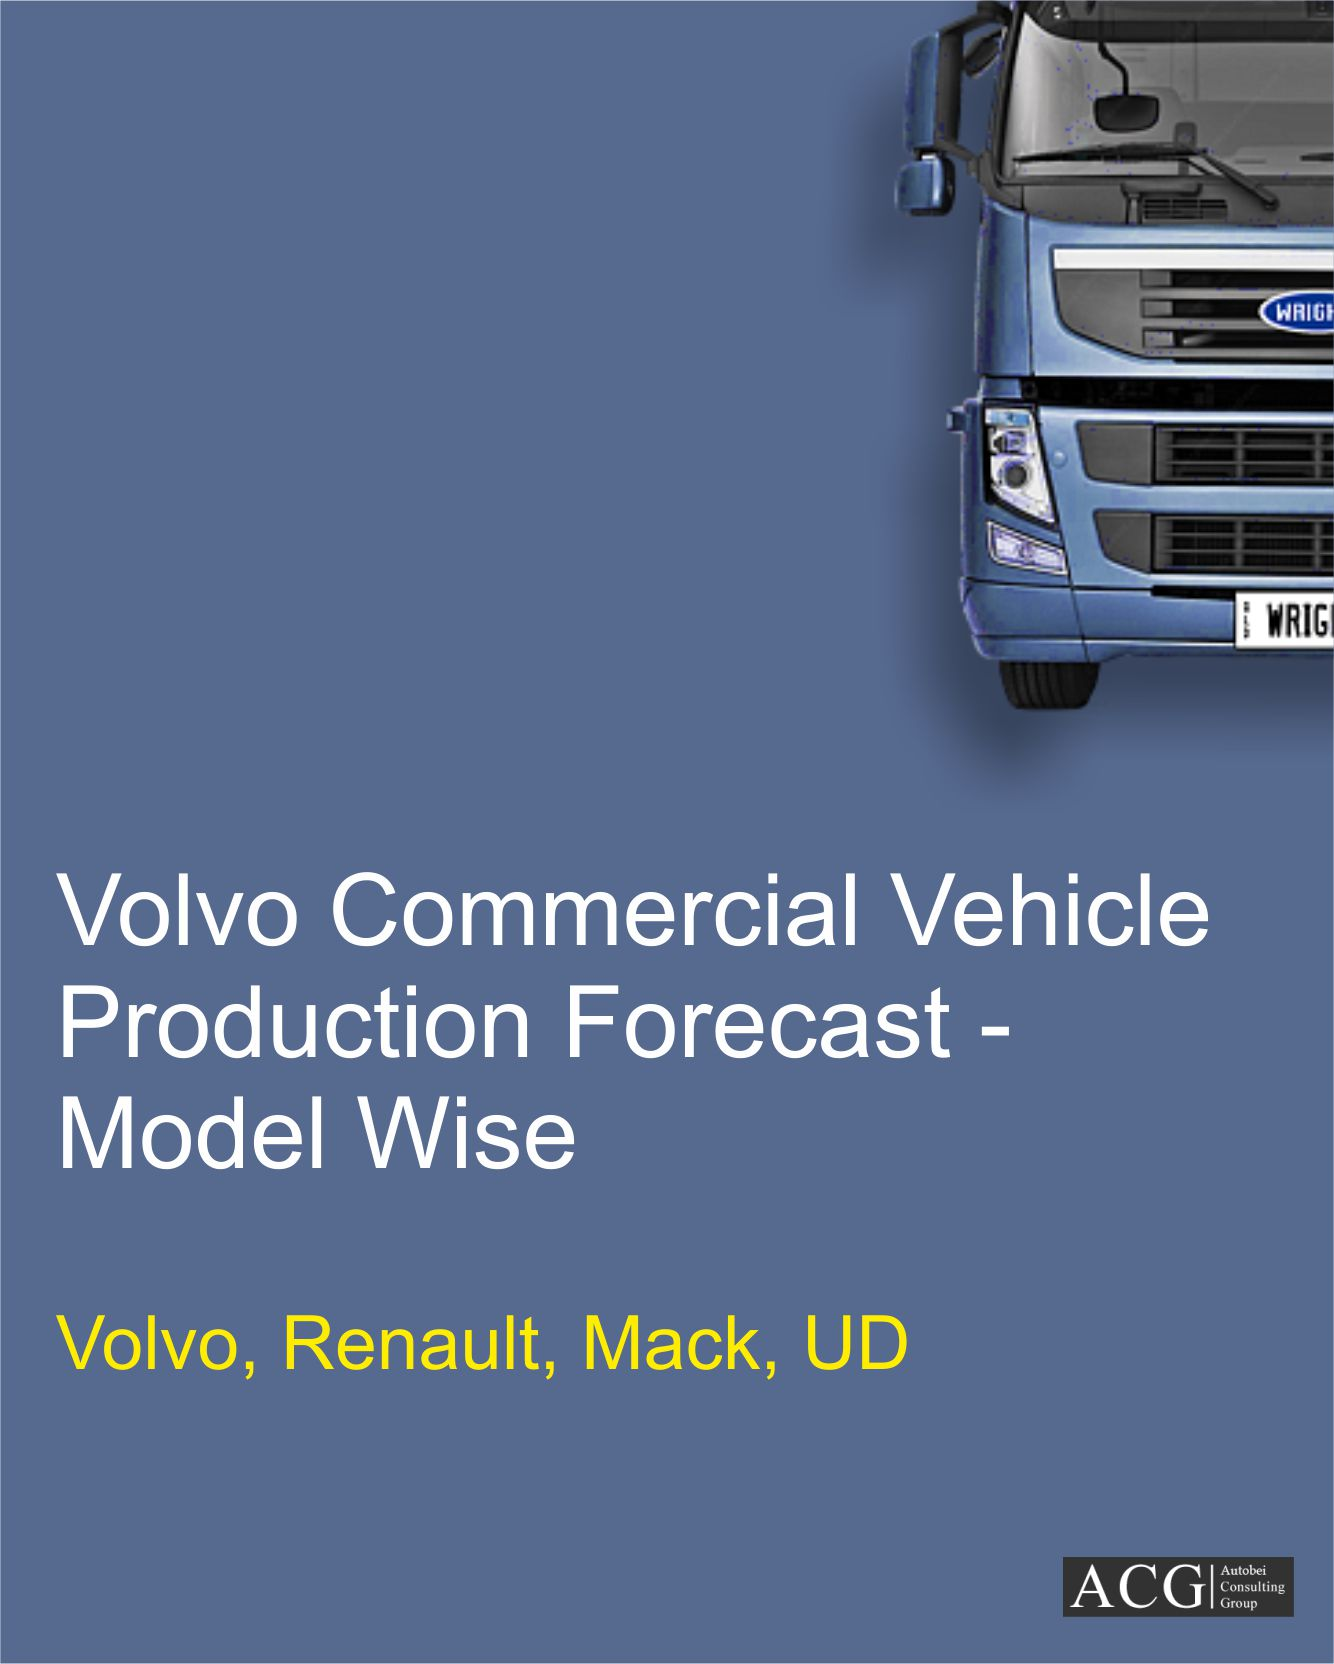 Volvo Commercial Vehicle Production Forecast